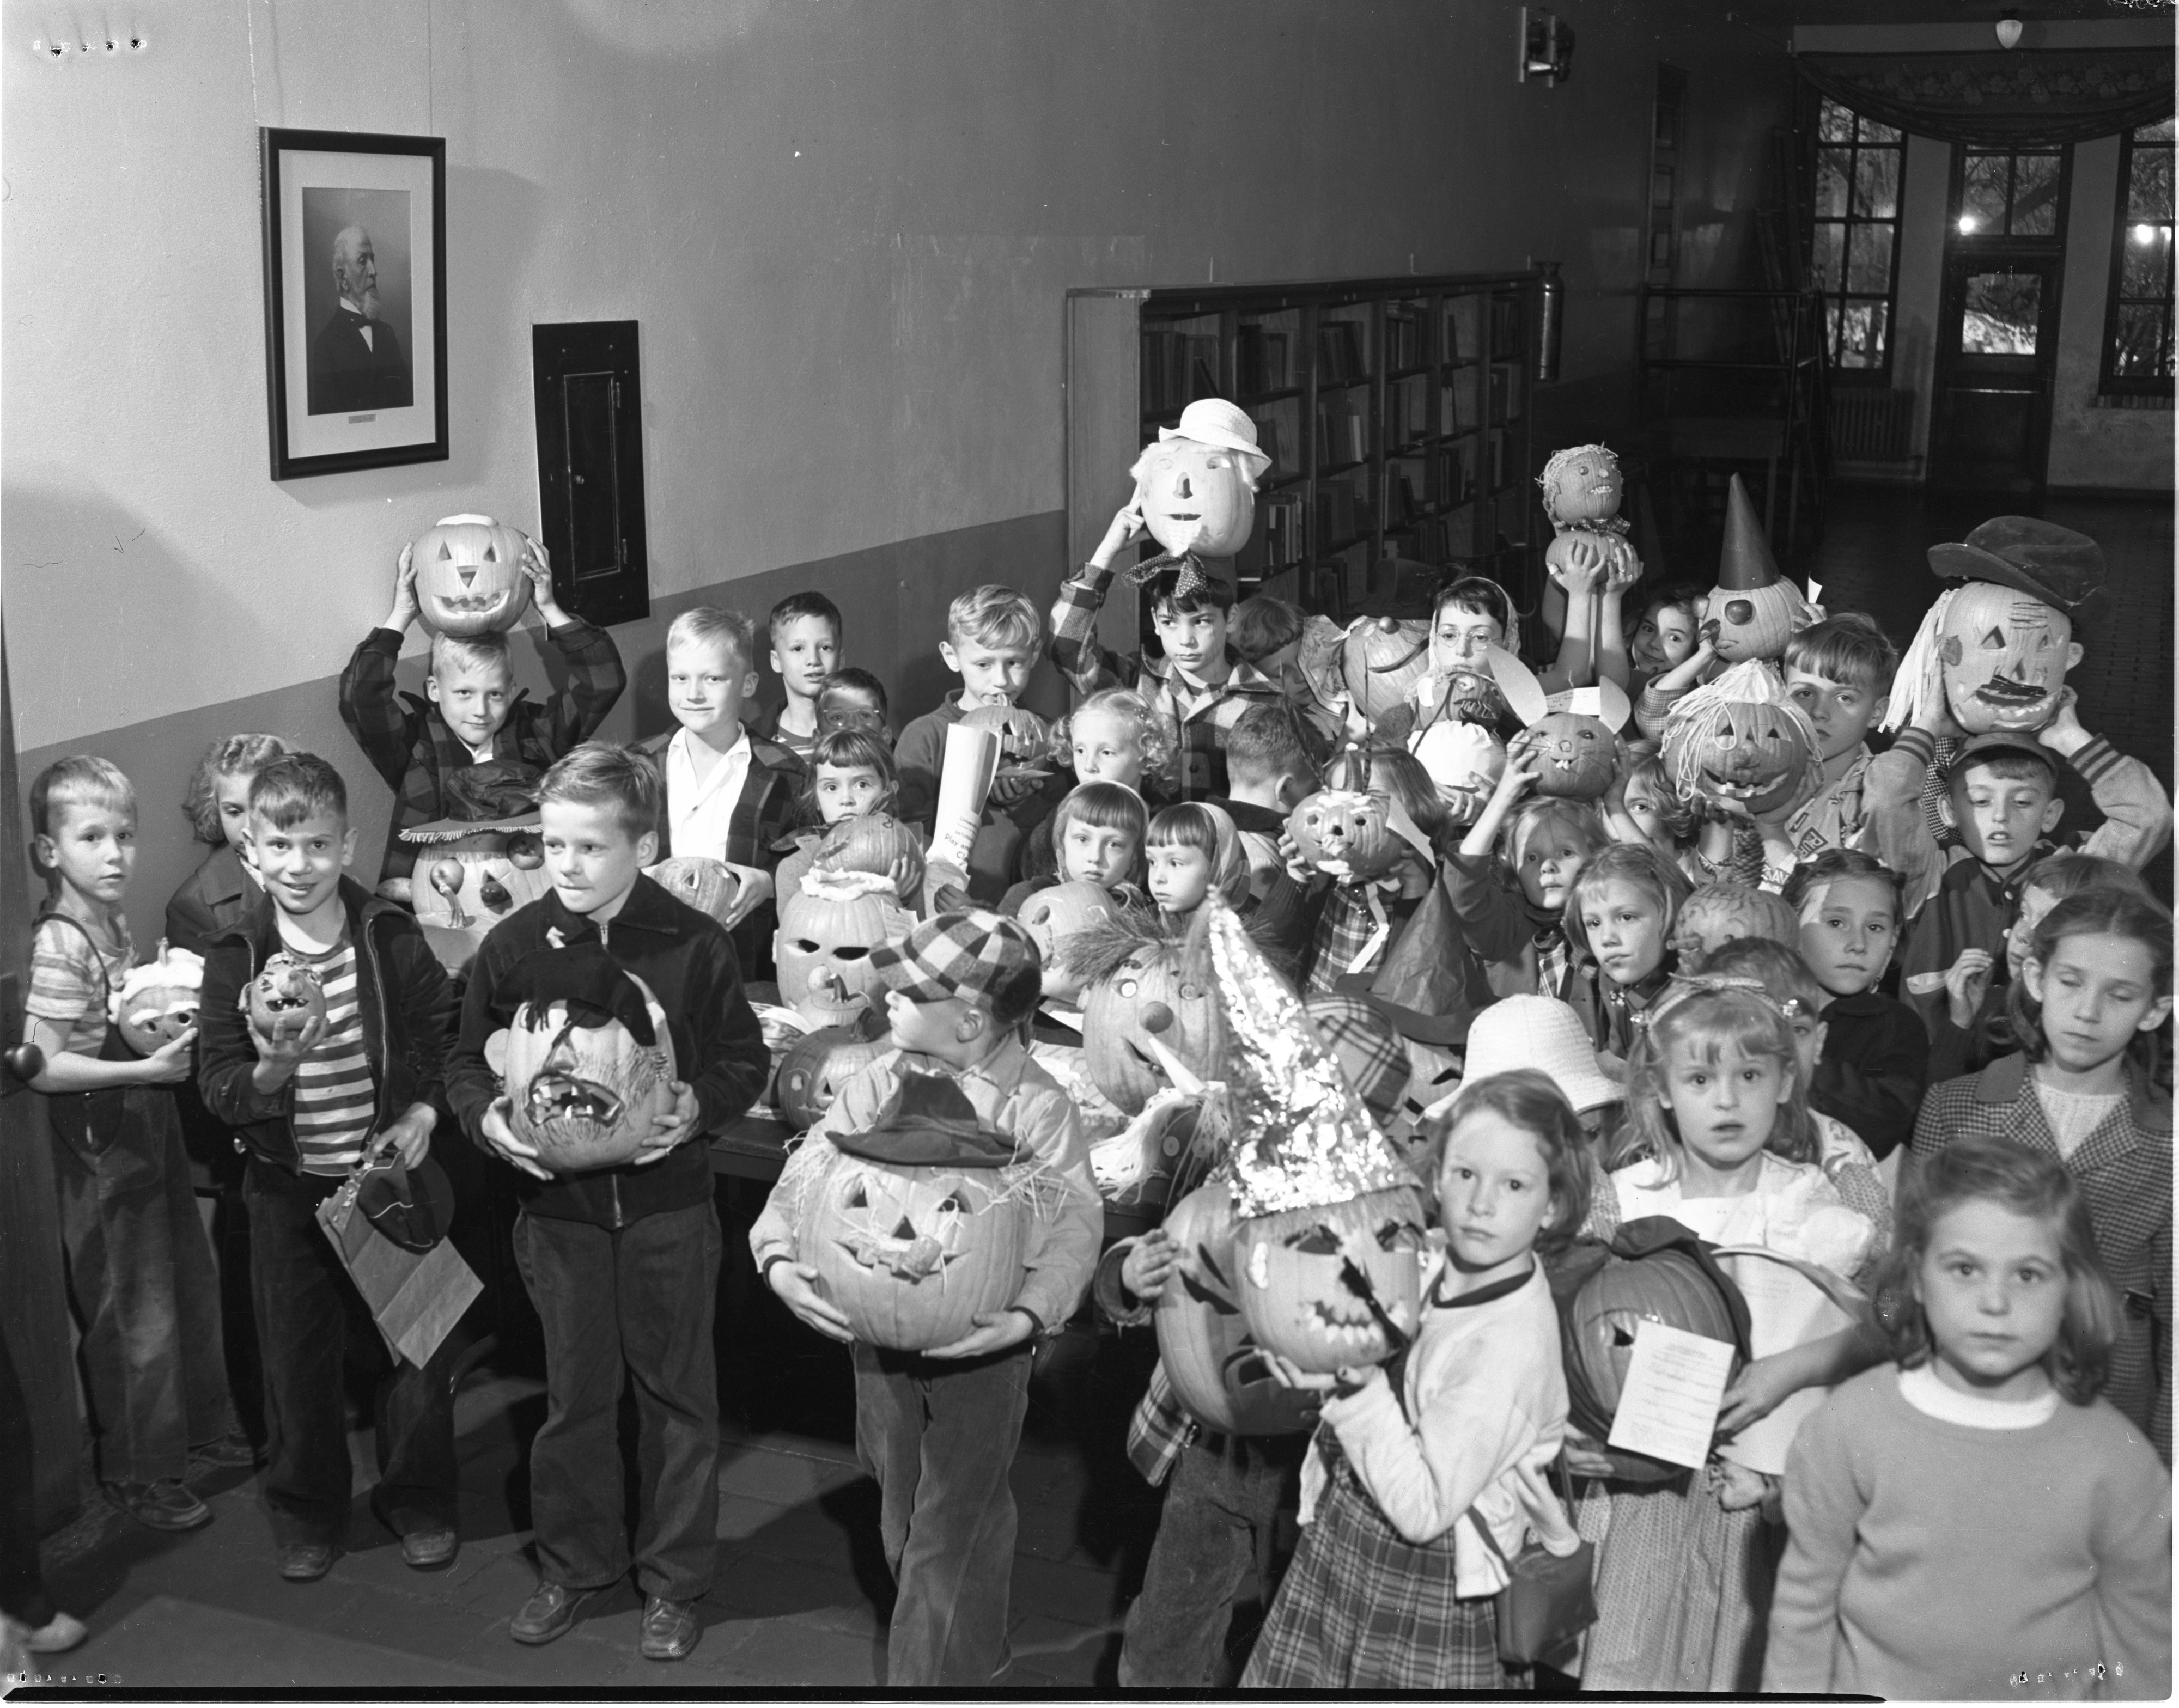 Bach School Students With Jack-O-Lanterns, October 1949 image